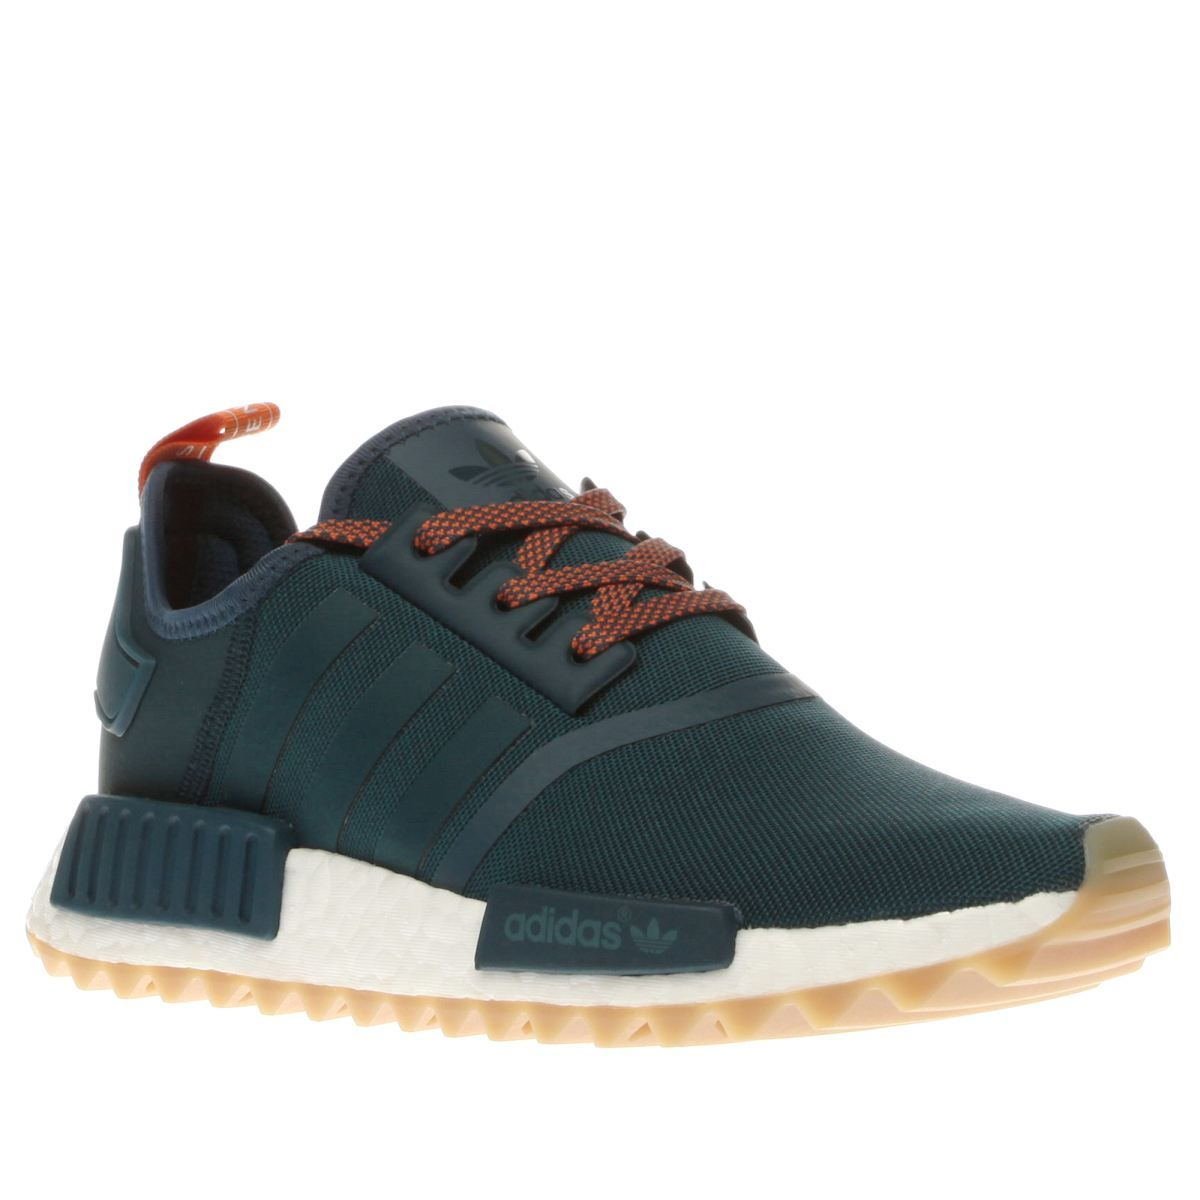 adidas NMD R1 Women's Runner Casual Shoe Hibbett US